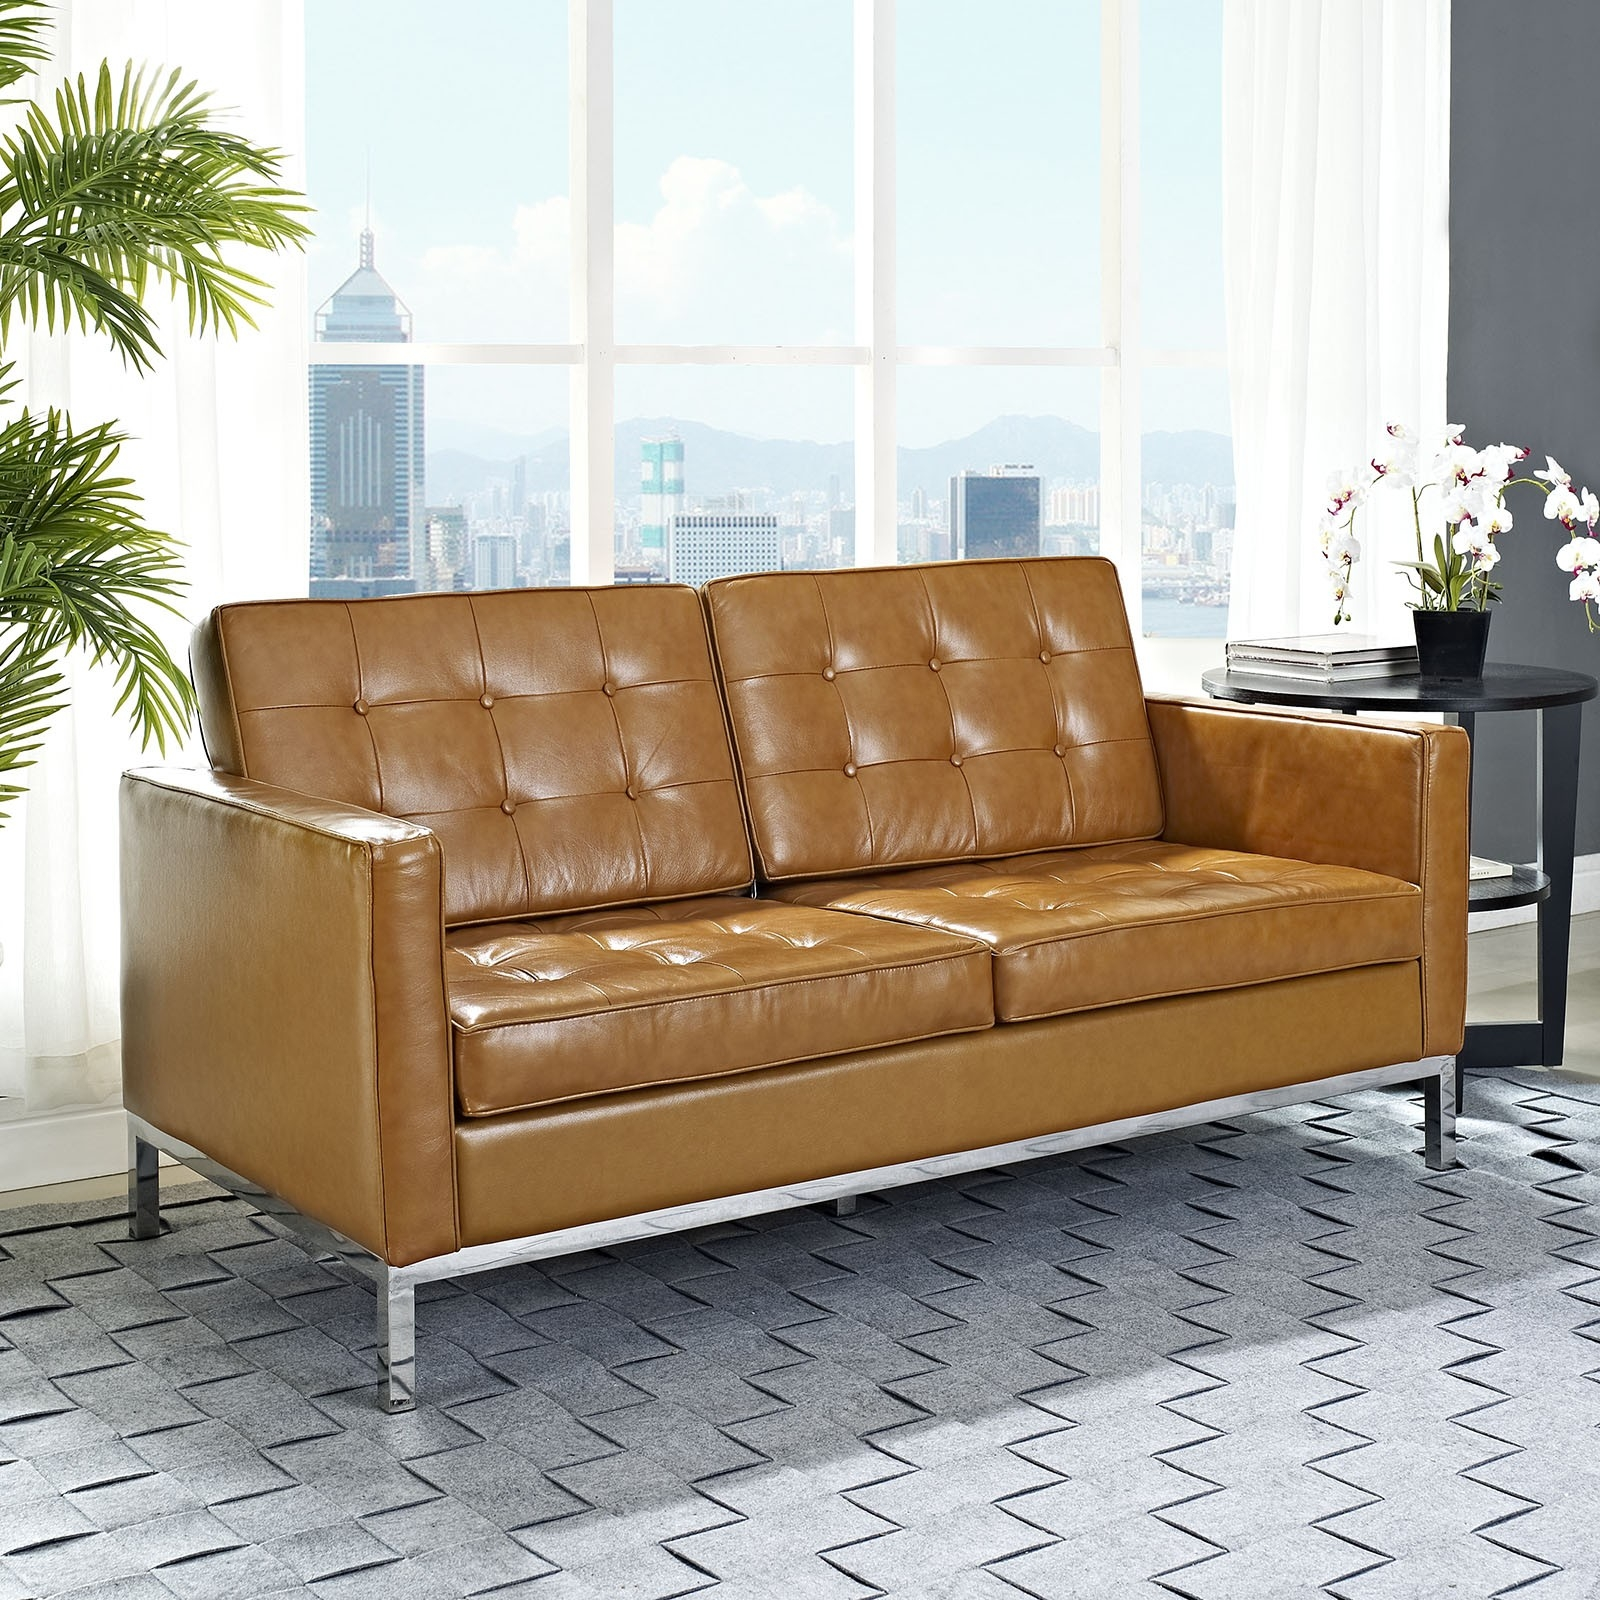 The Florence Statesman Leather Chesterfield Sofa Authentic Within Florence Knoll Leather Sofas (Image 15 of 15)